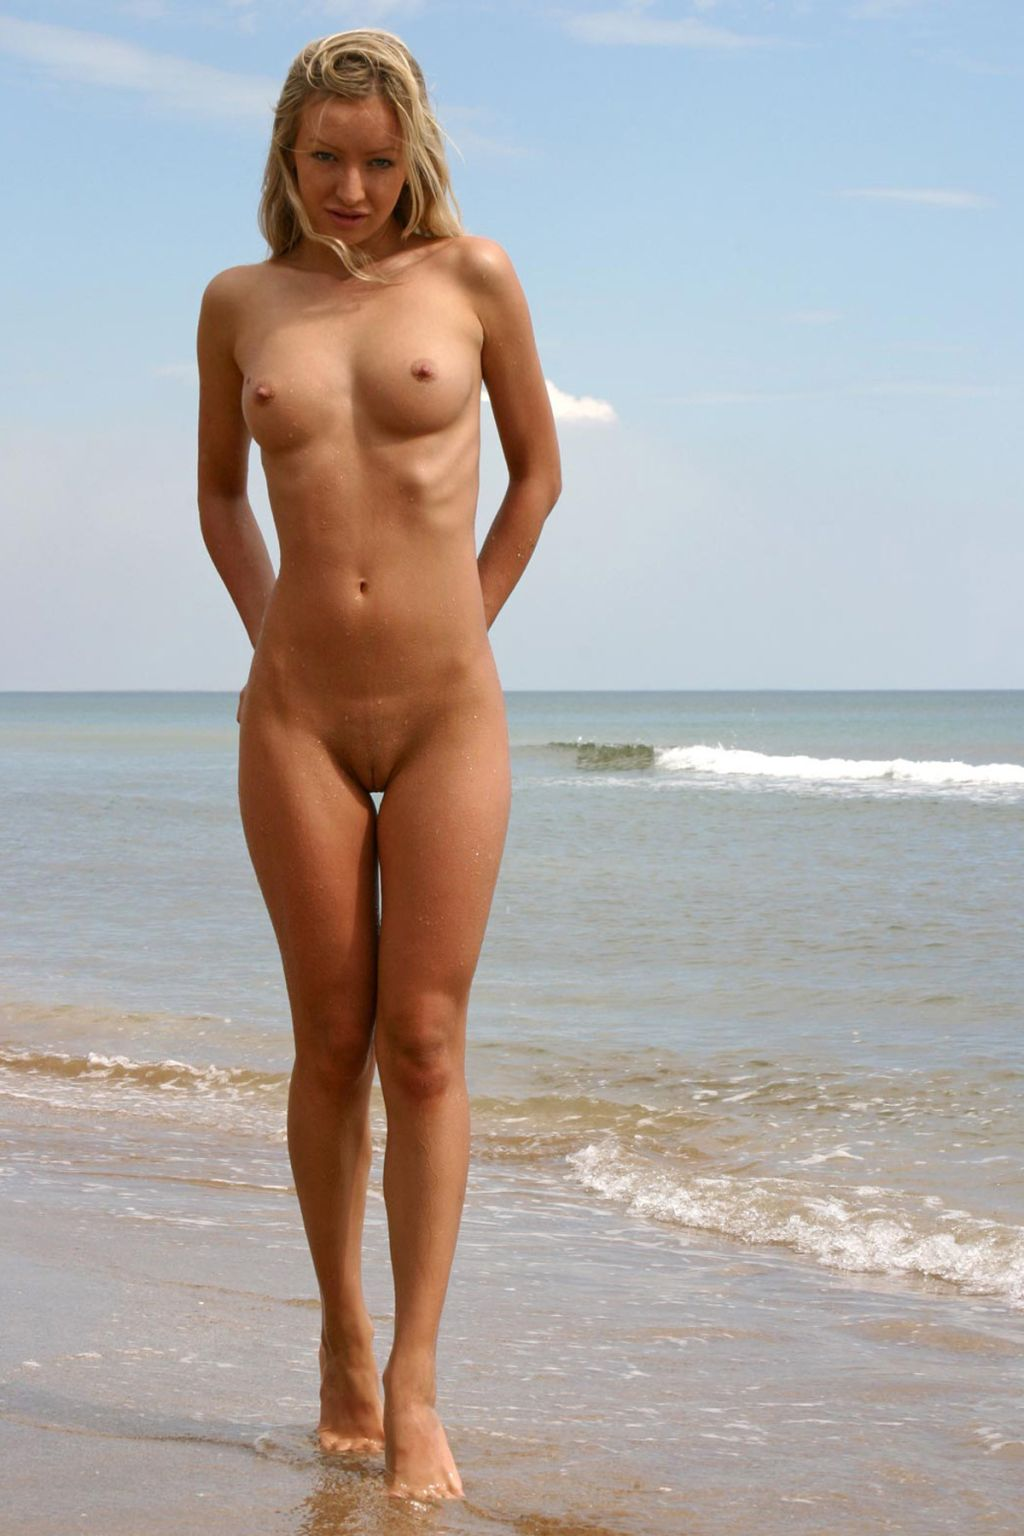 Red Z. reccomend Beauty blonde babe Topless on the Beach